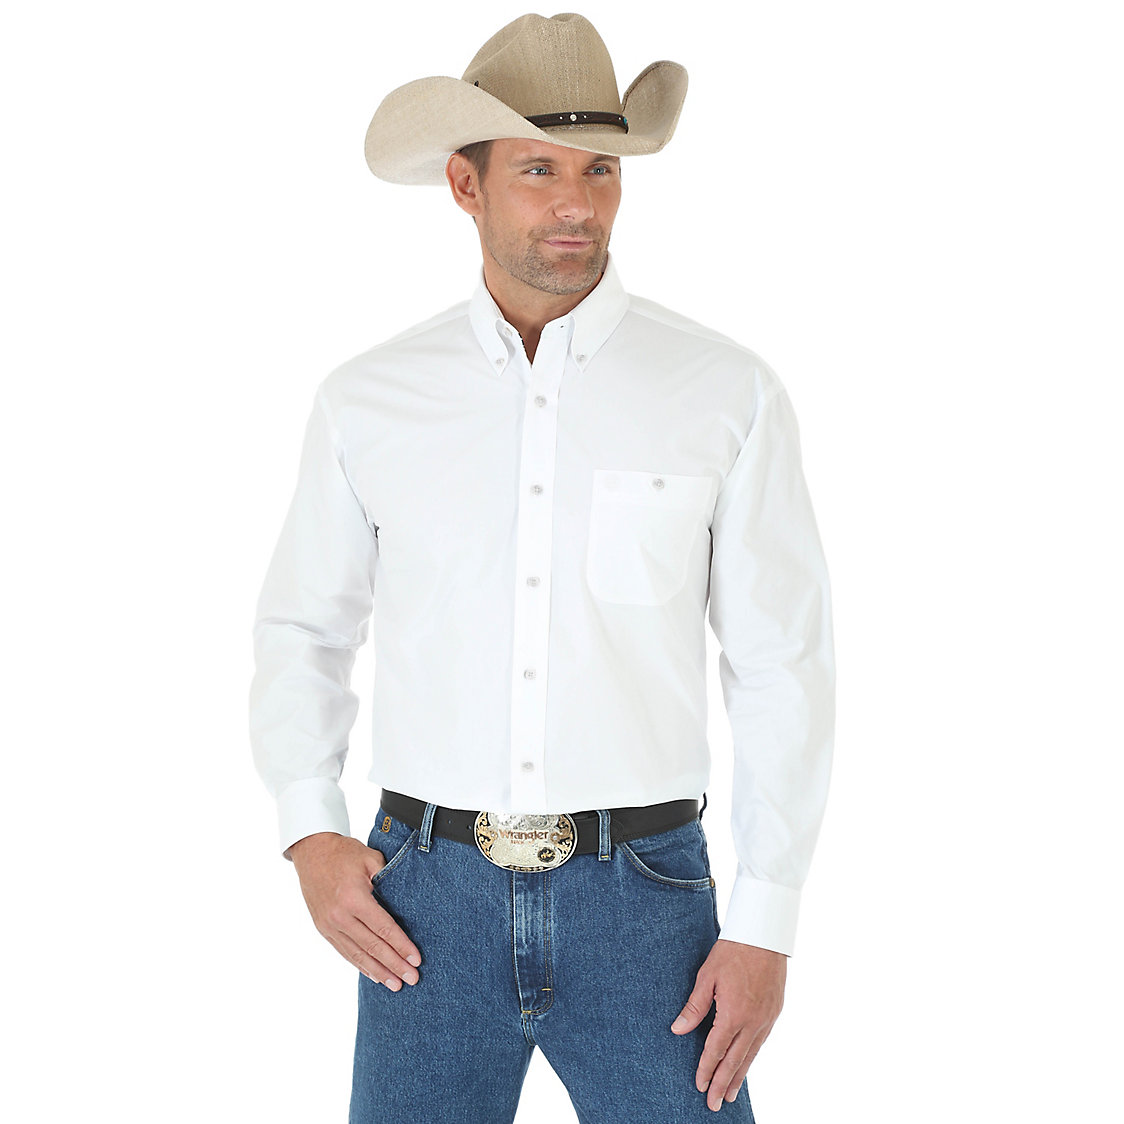 Wrangler Men's George Strait National Patriot Button Down Long Sleeve Shirt - Solid White